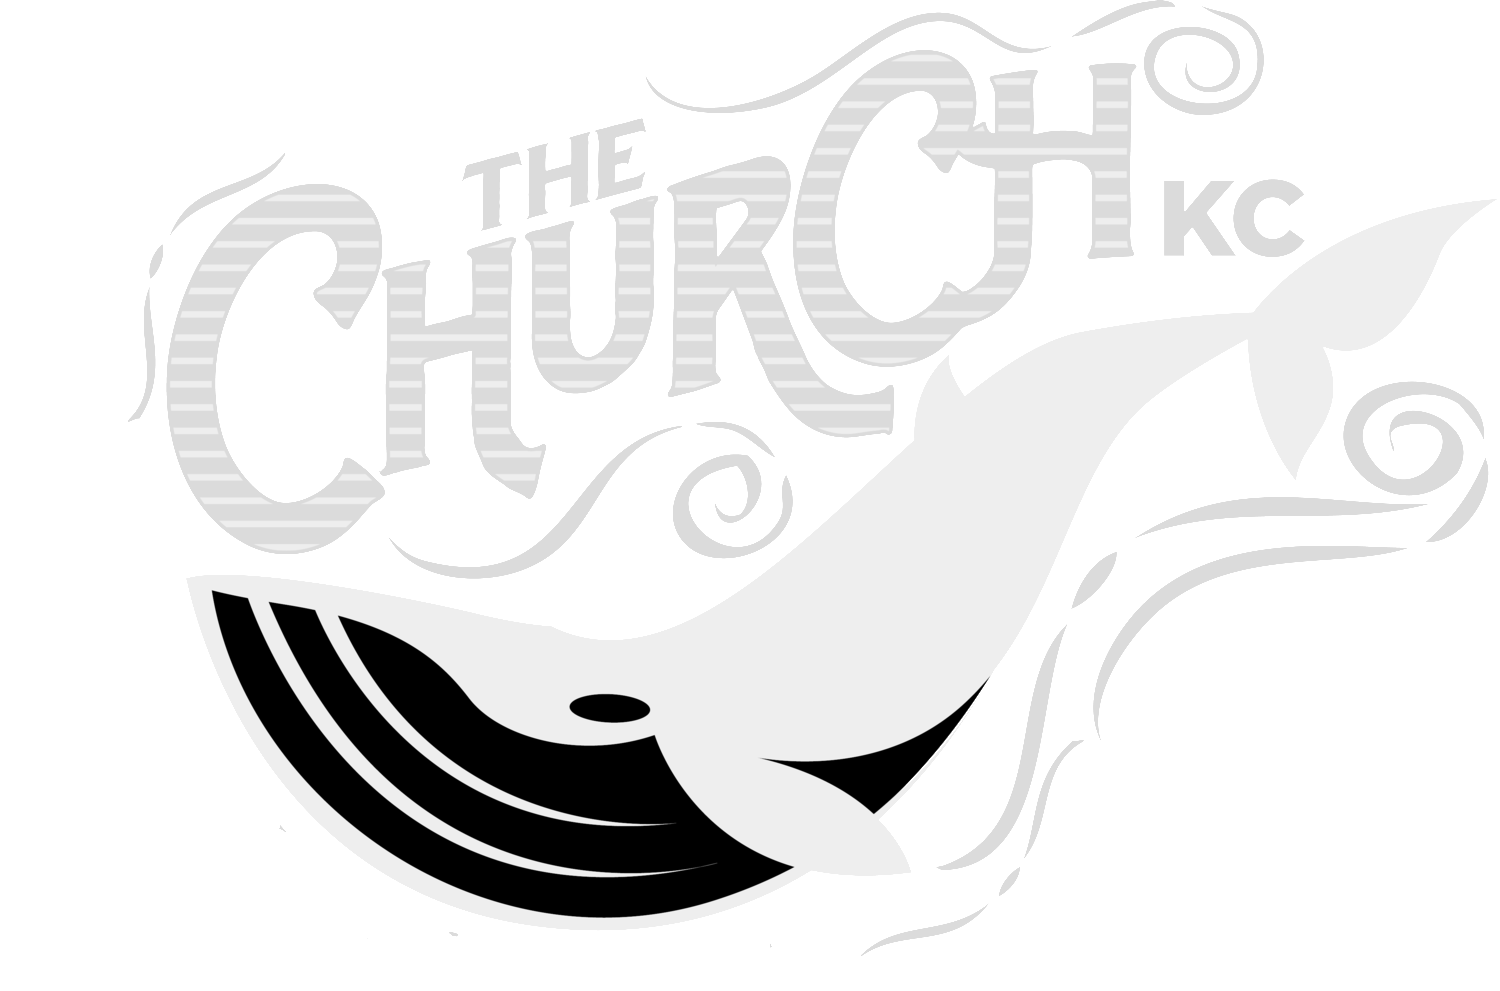 The Church KC